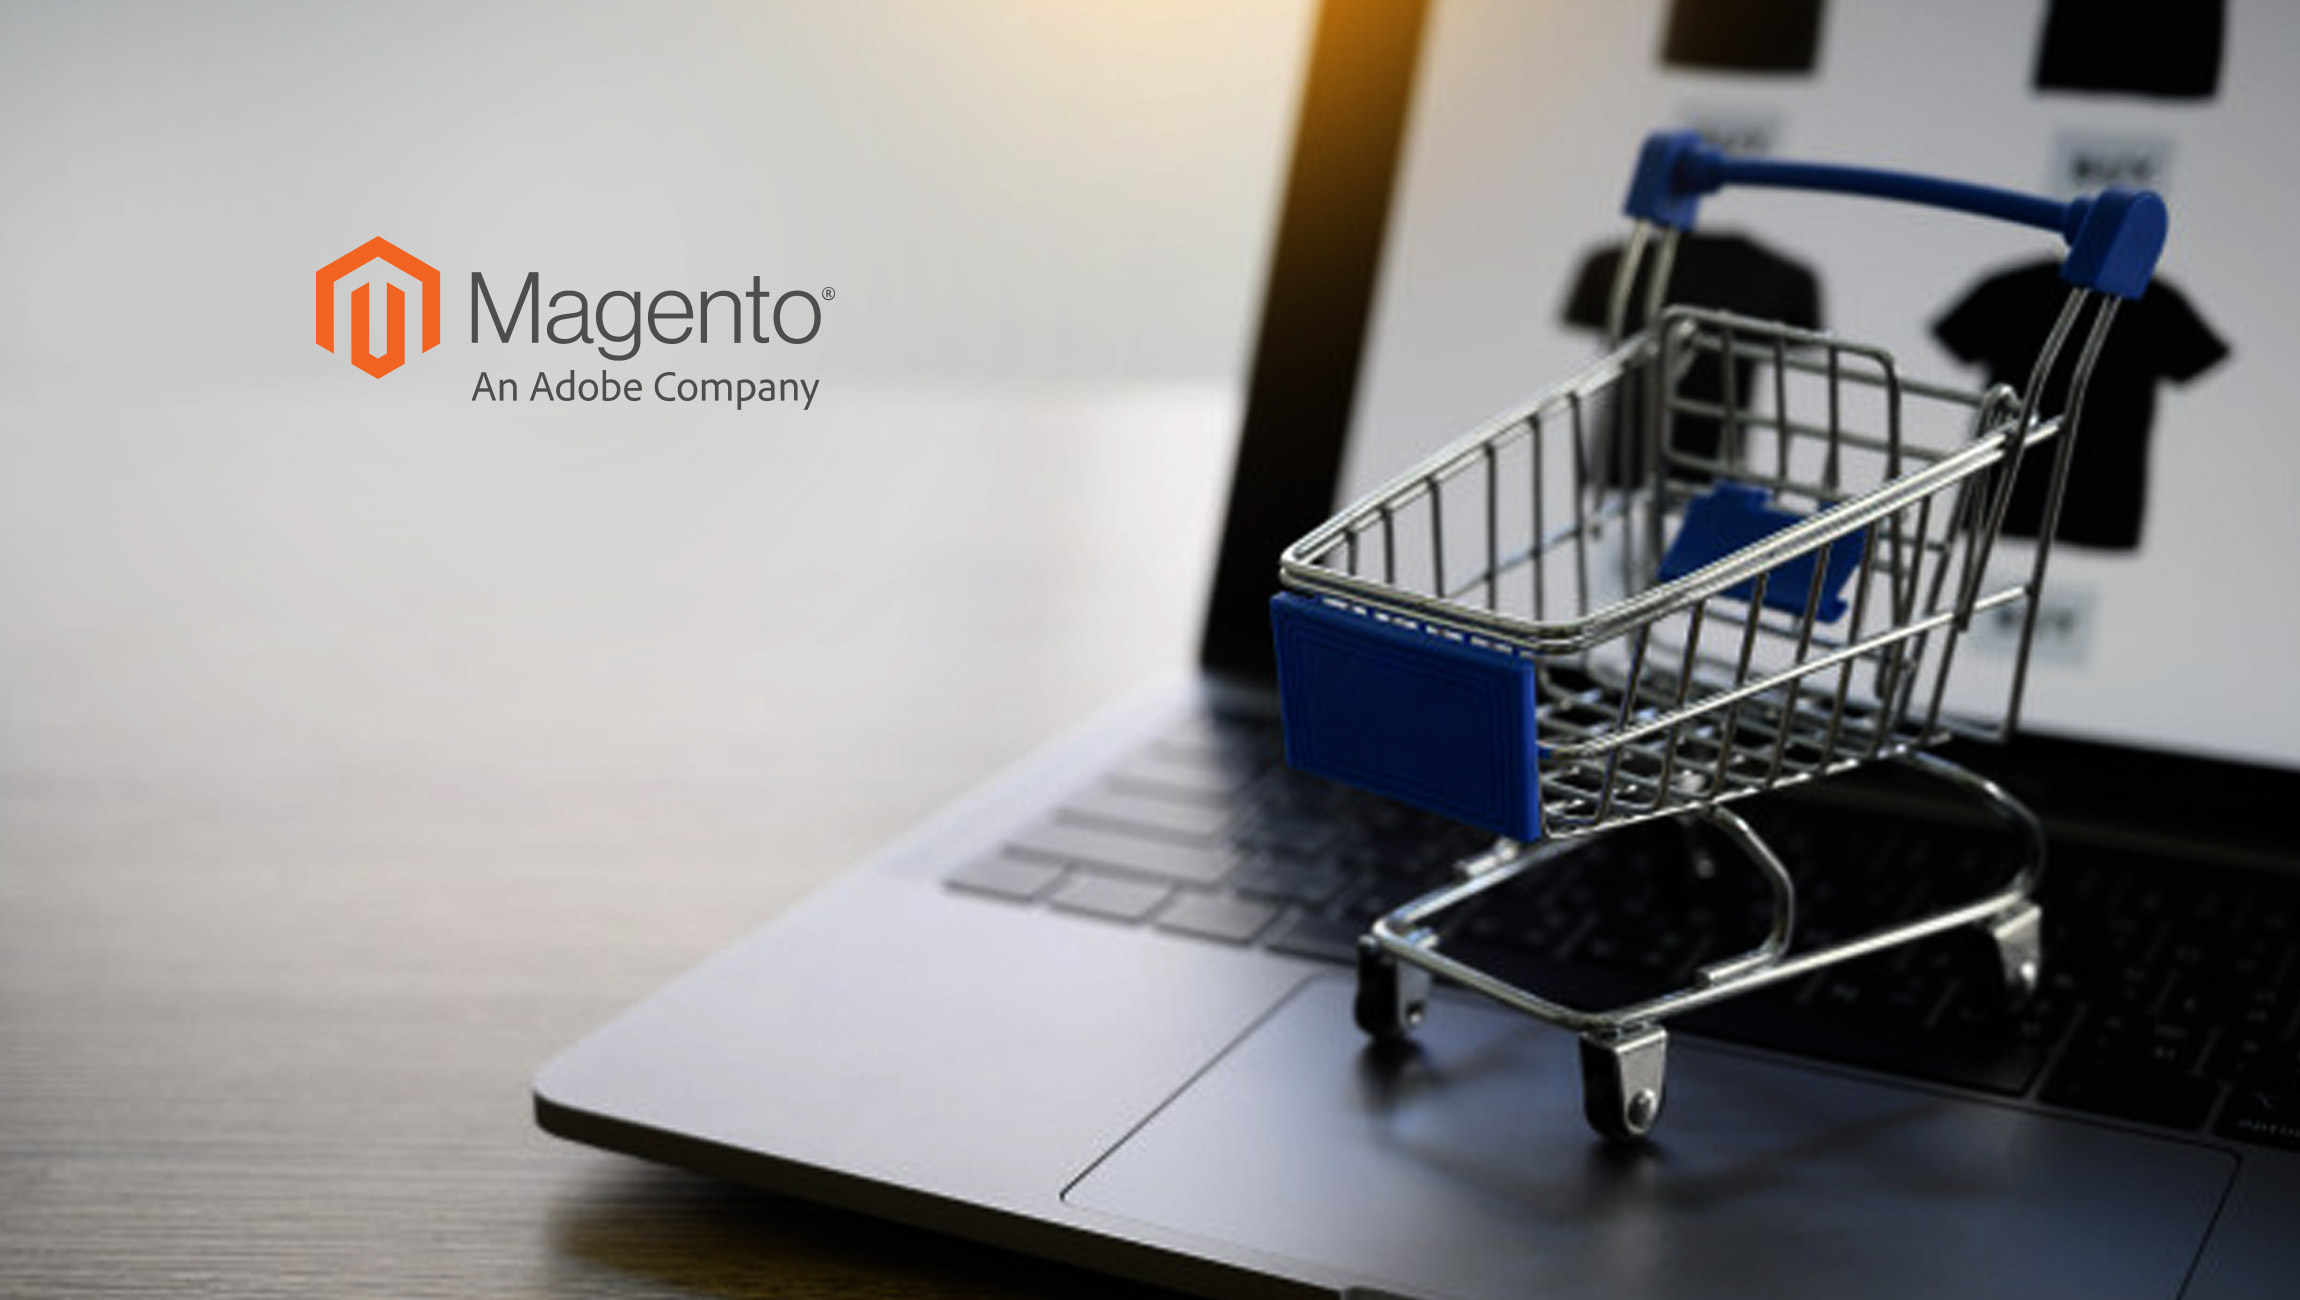 Adobe Magento BI Launches New Features